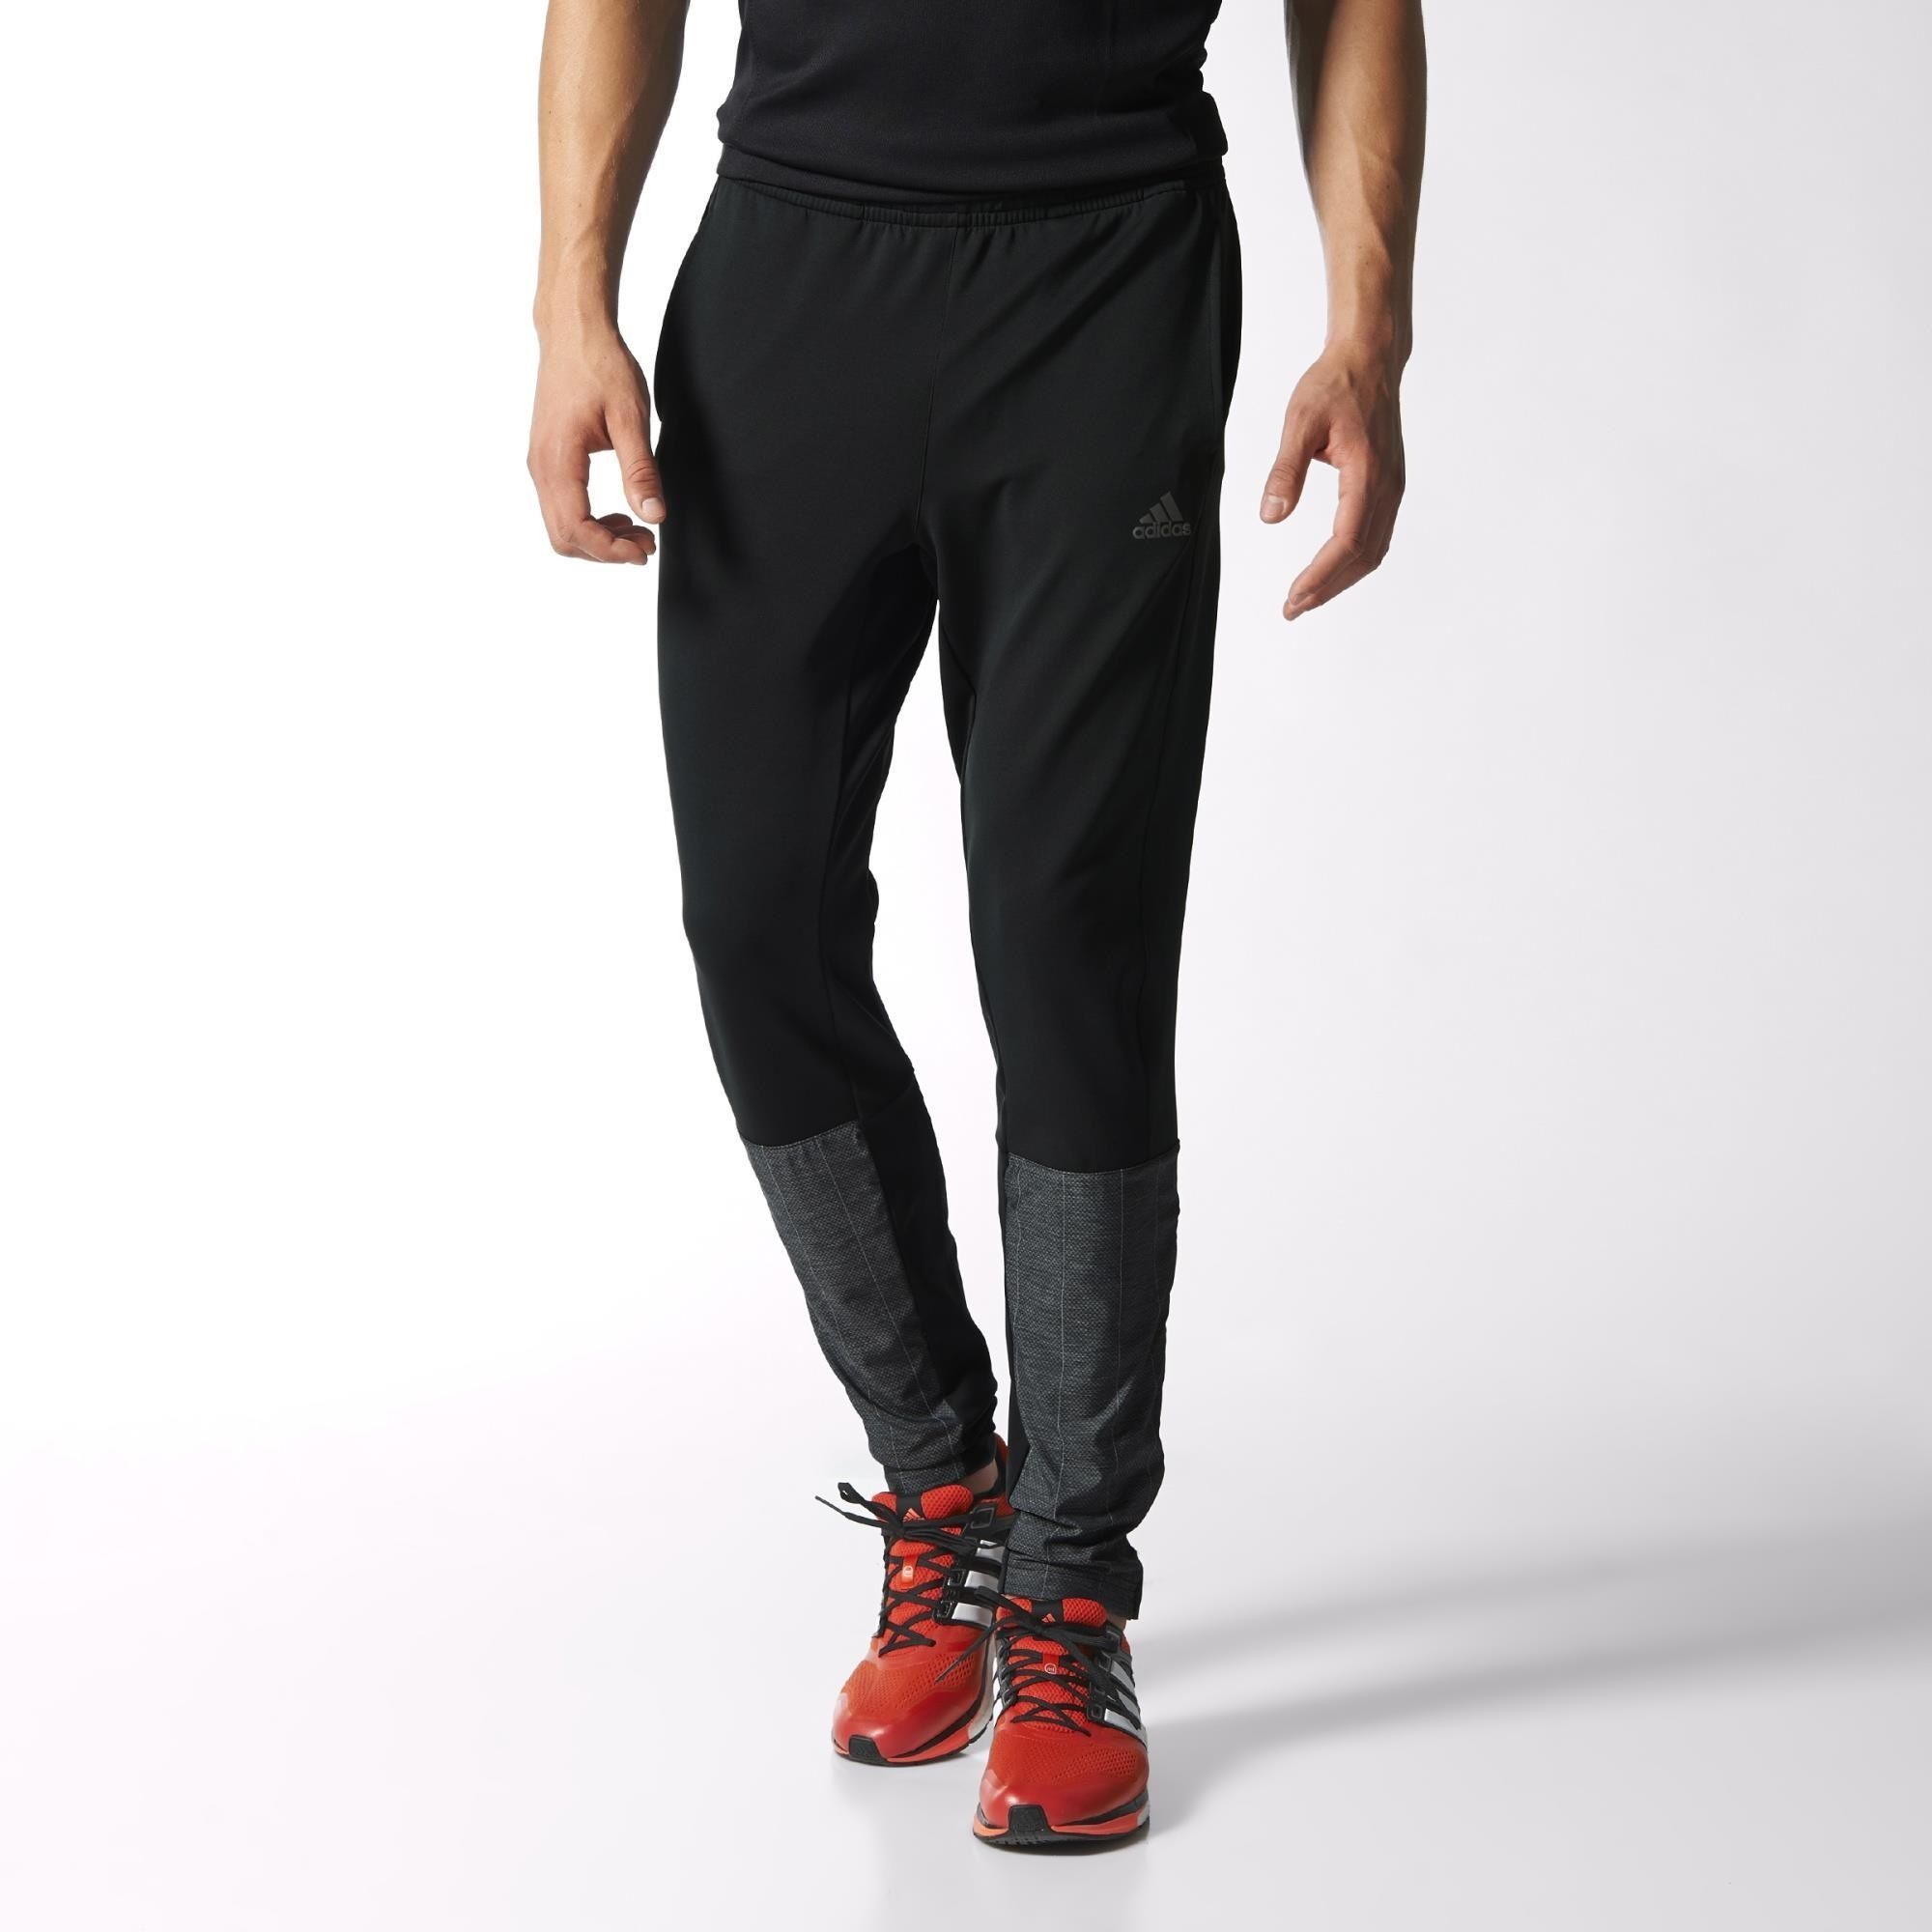 adidas - Men's Supernova Storm Slim Track Pants $75